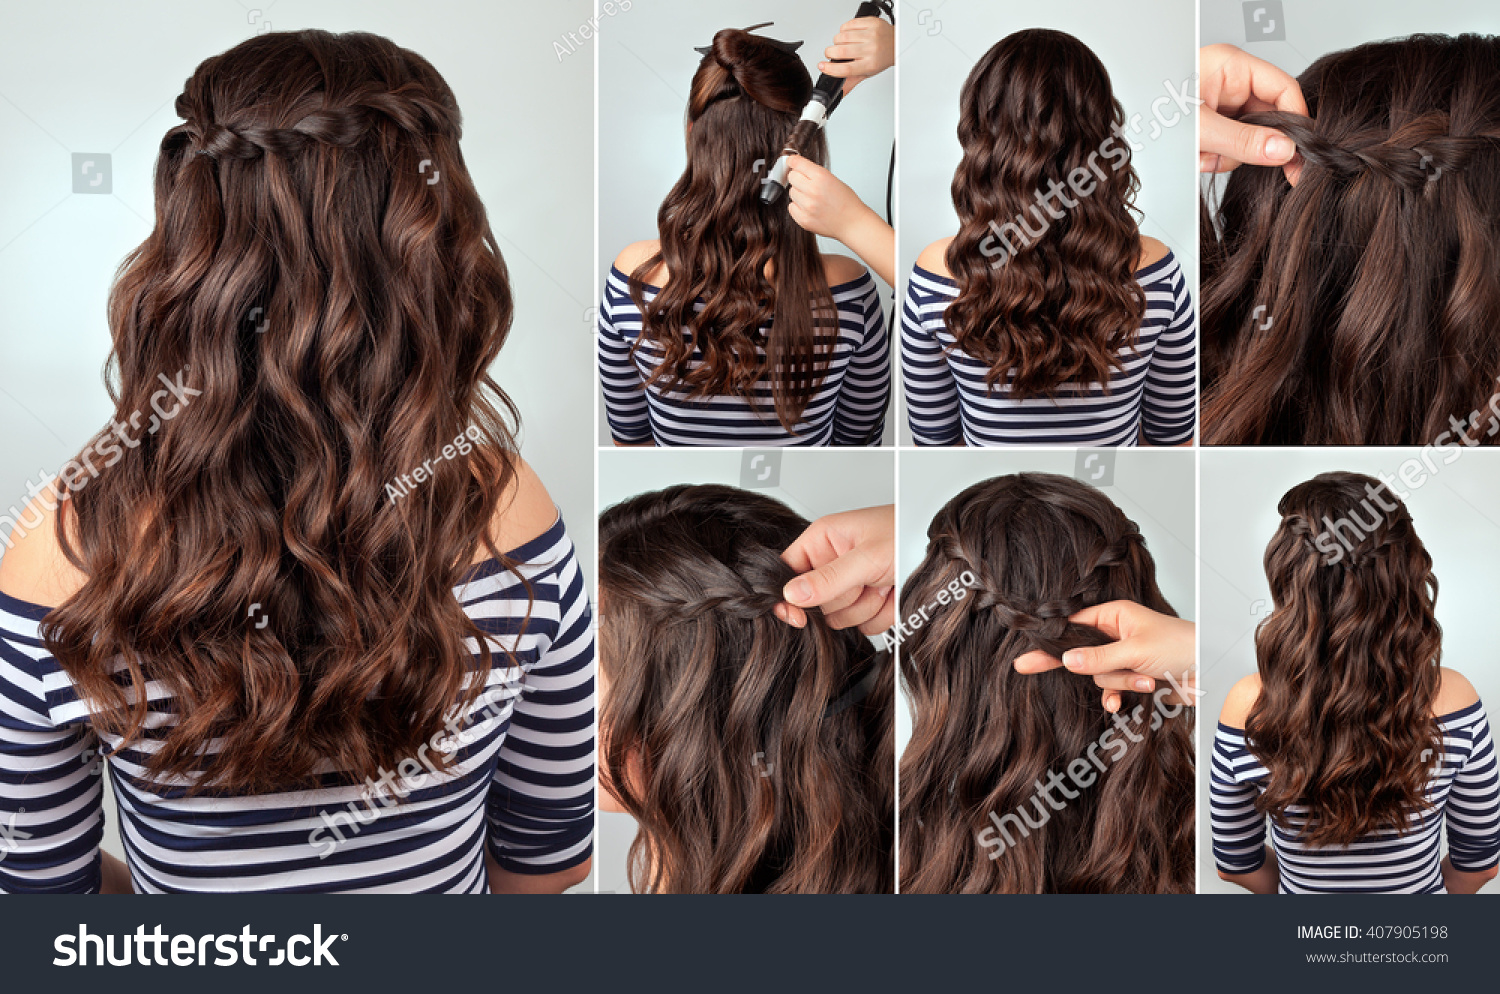 Tutorial Photo Braided Hairstyle Long Curly Stock Photo Edit Now 407905198